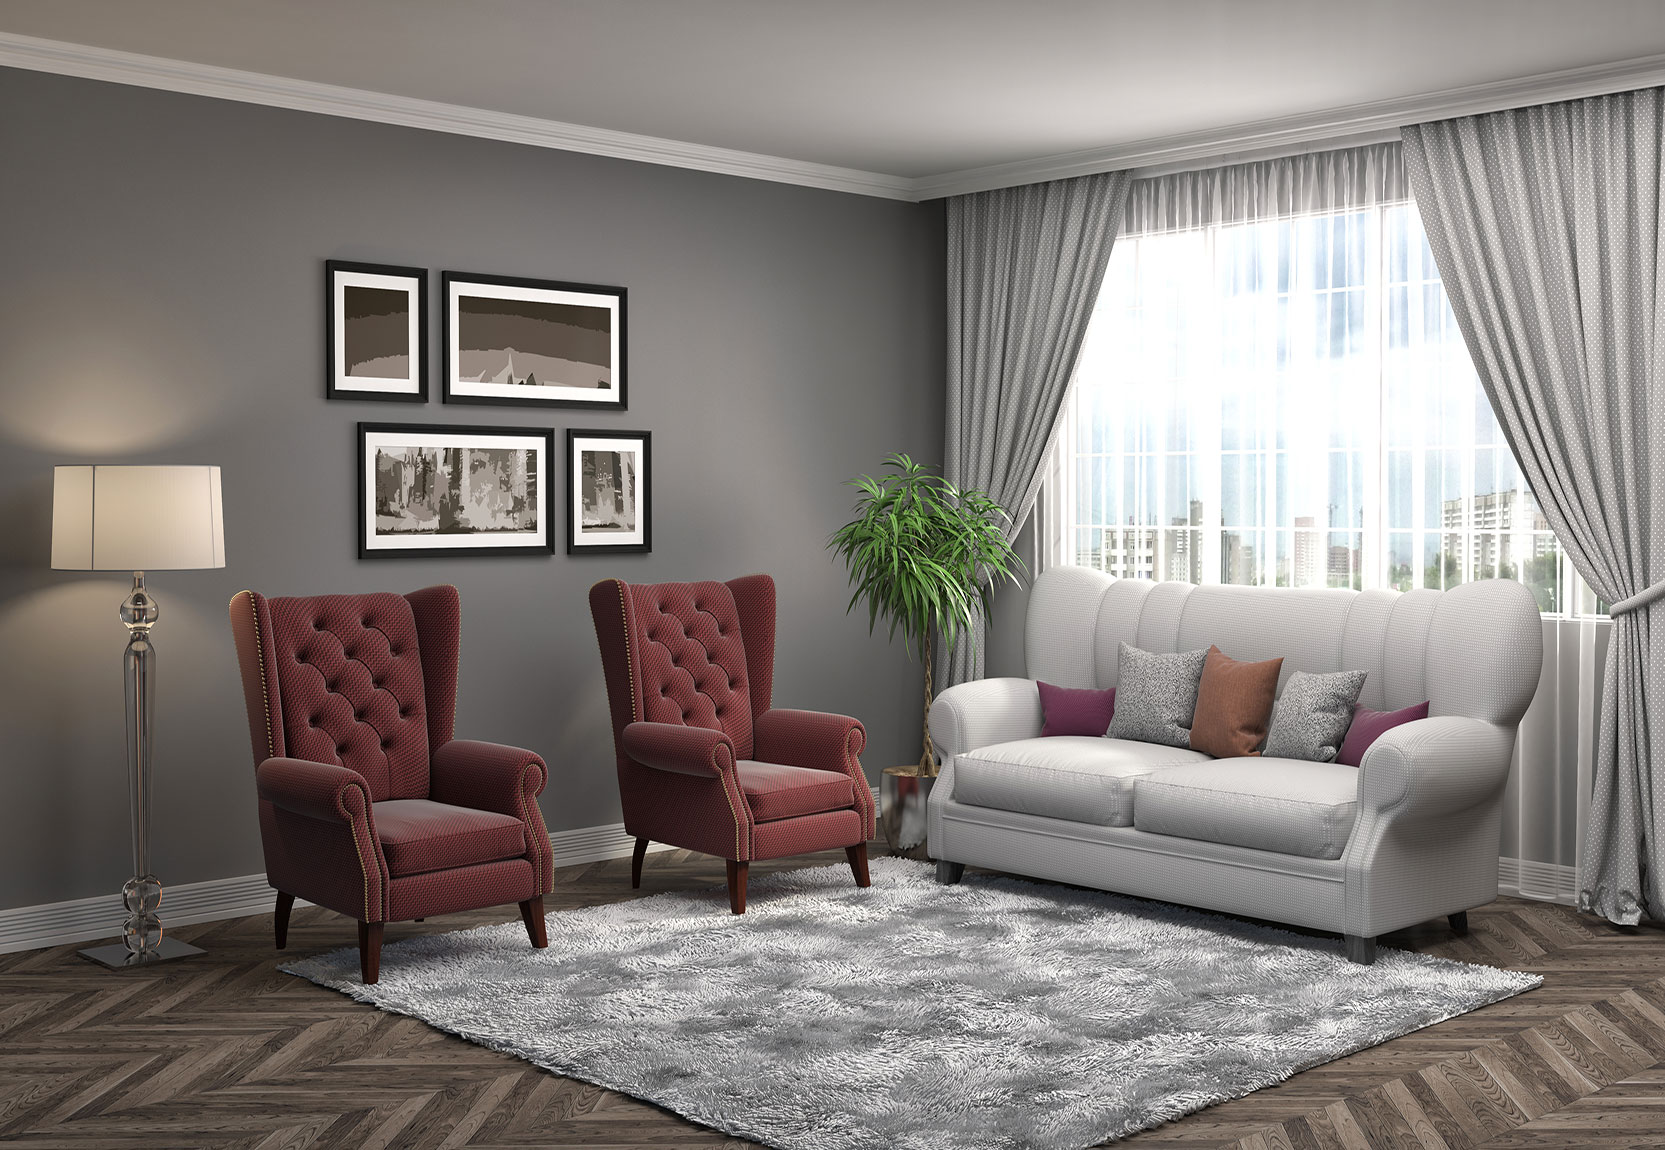 Rooms Colour Combination Needs to be Prioritized Giving Importance